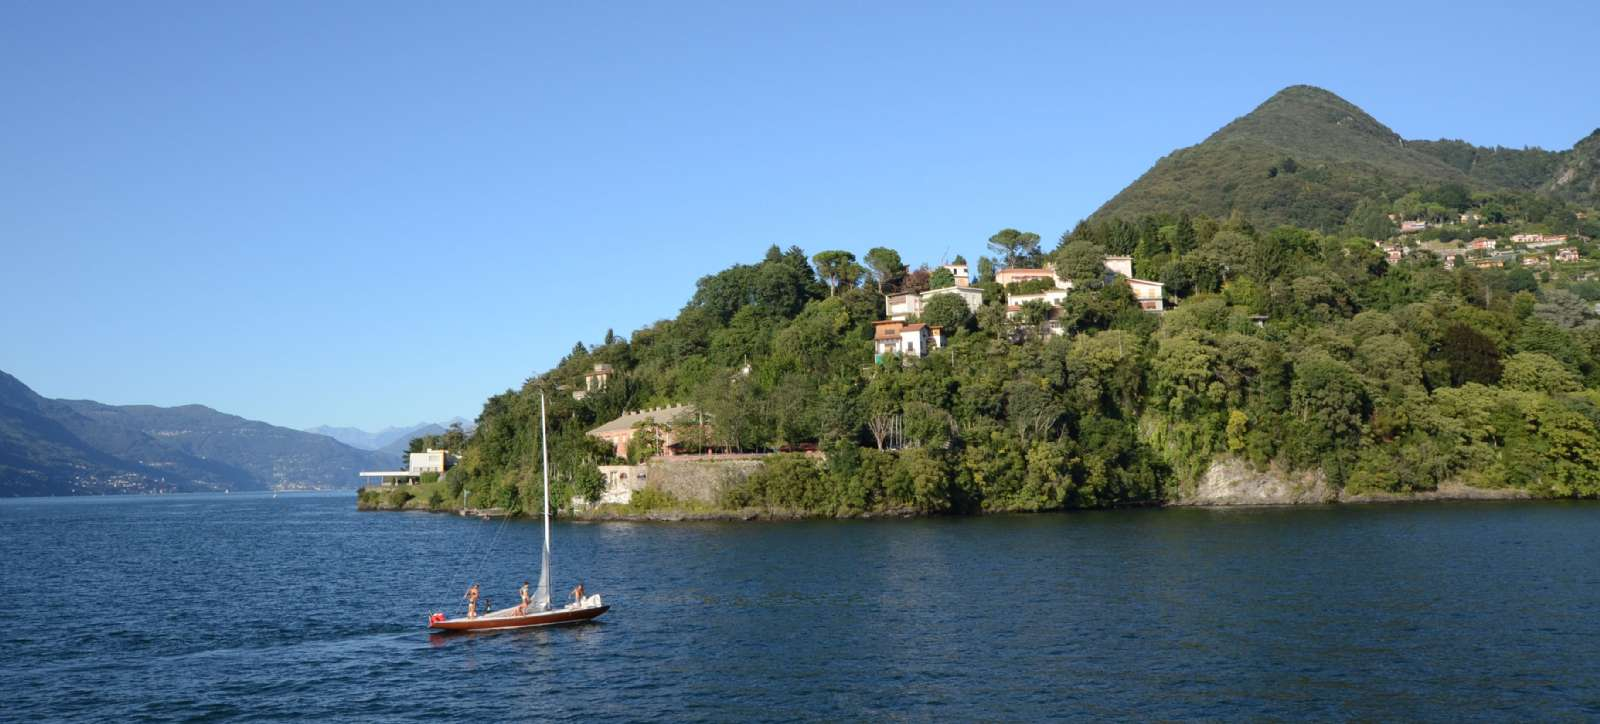 Lake Maggiore encourages life to be lived to the full